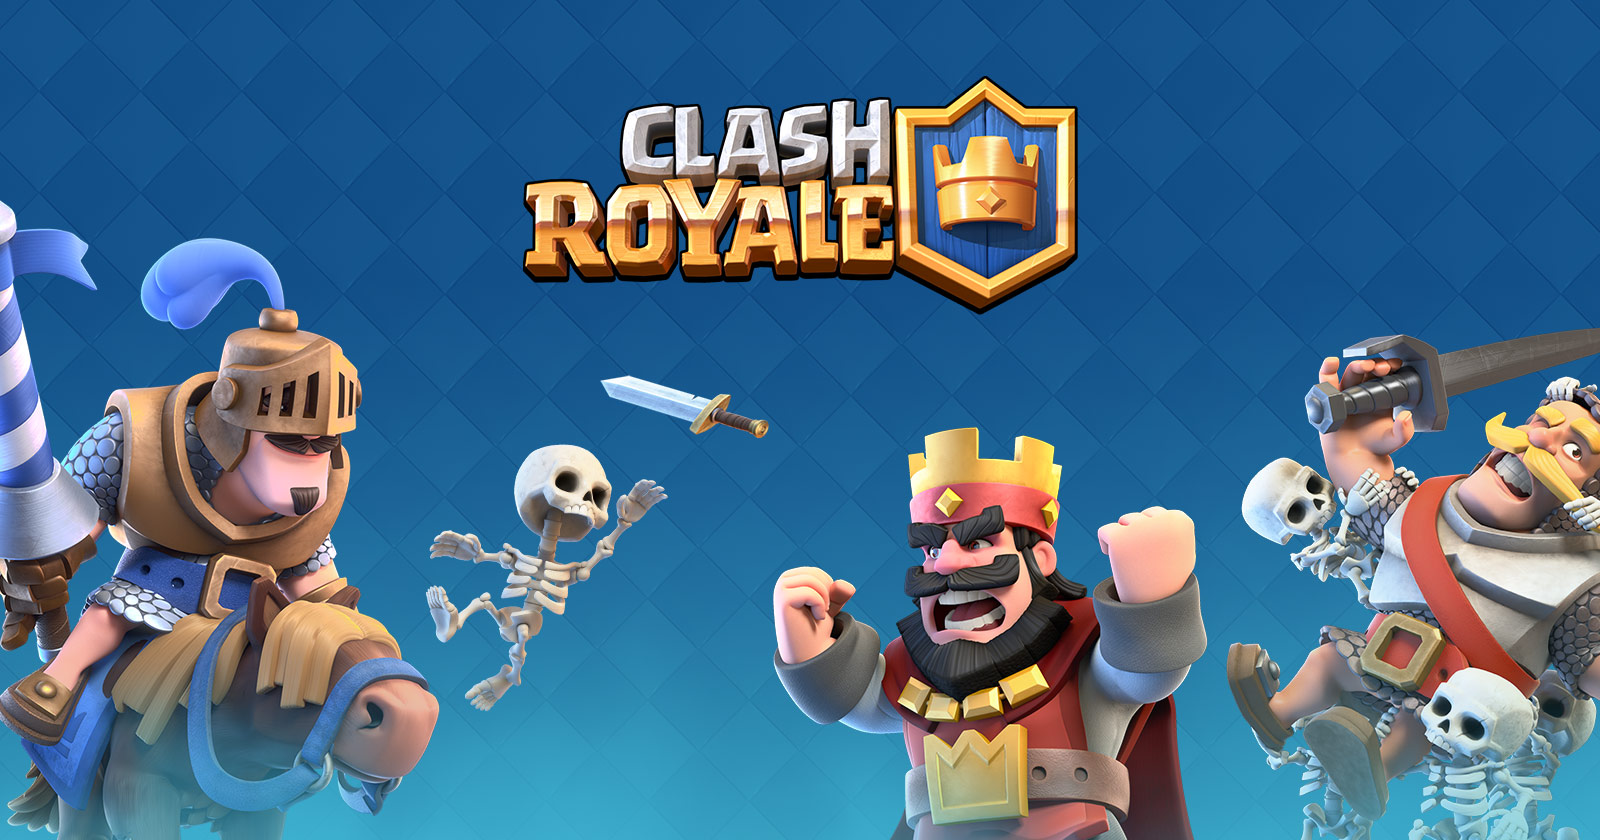 Clash Royale × Supercell